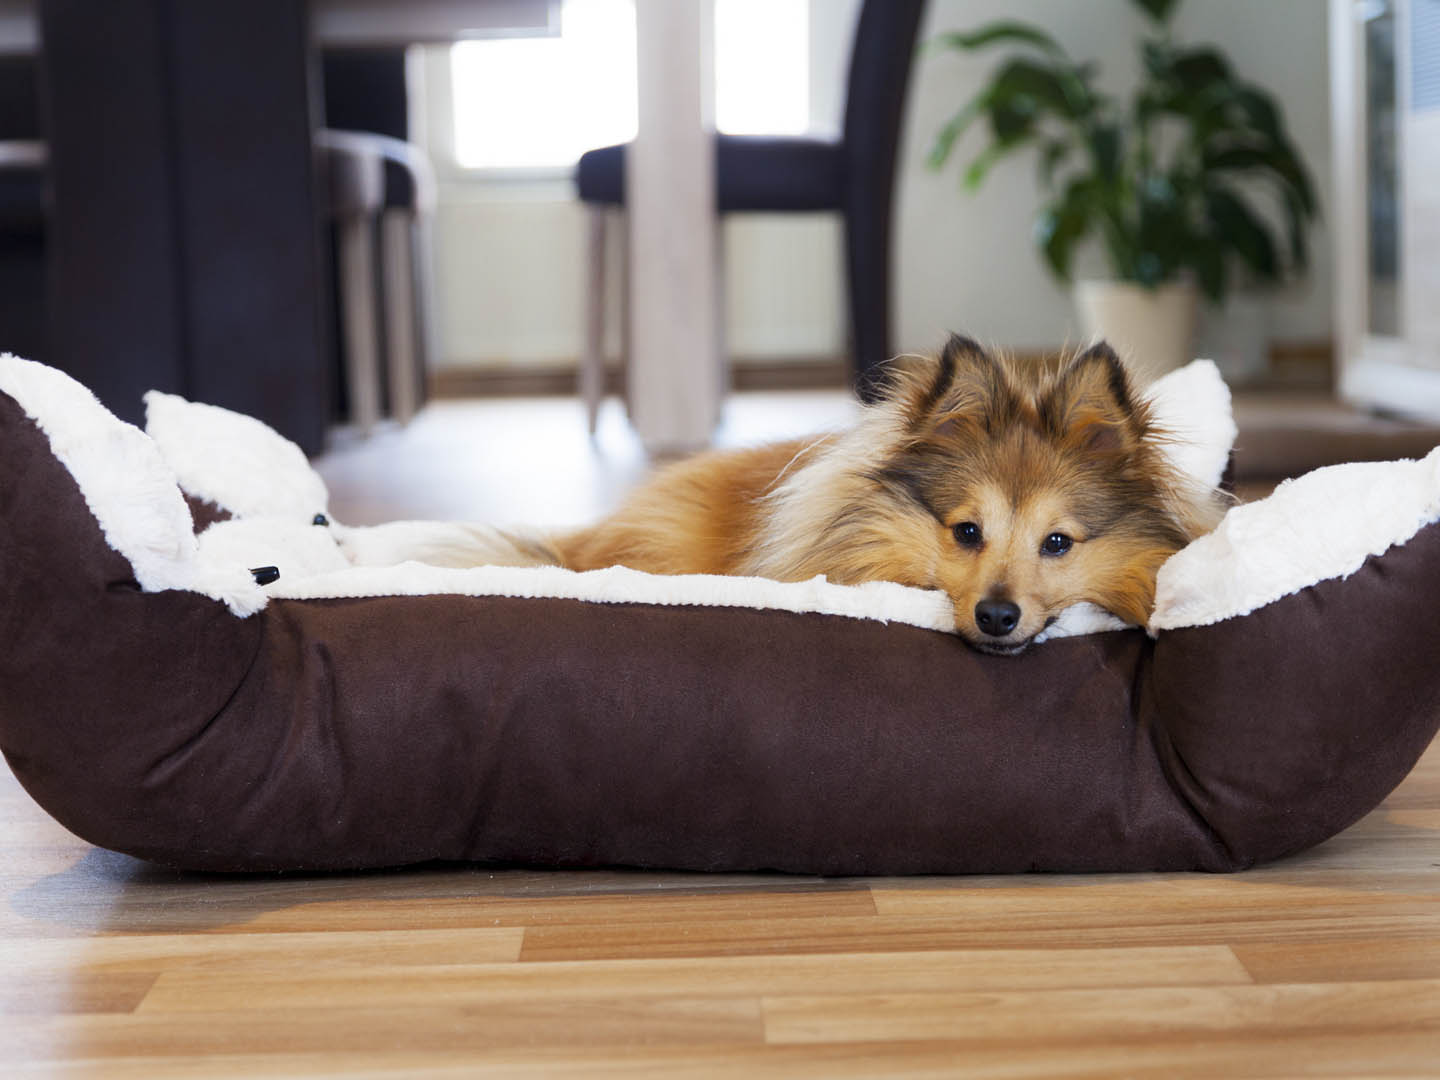 Keep Pets Out of Your Bed? - Dr. Weil